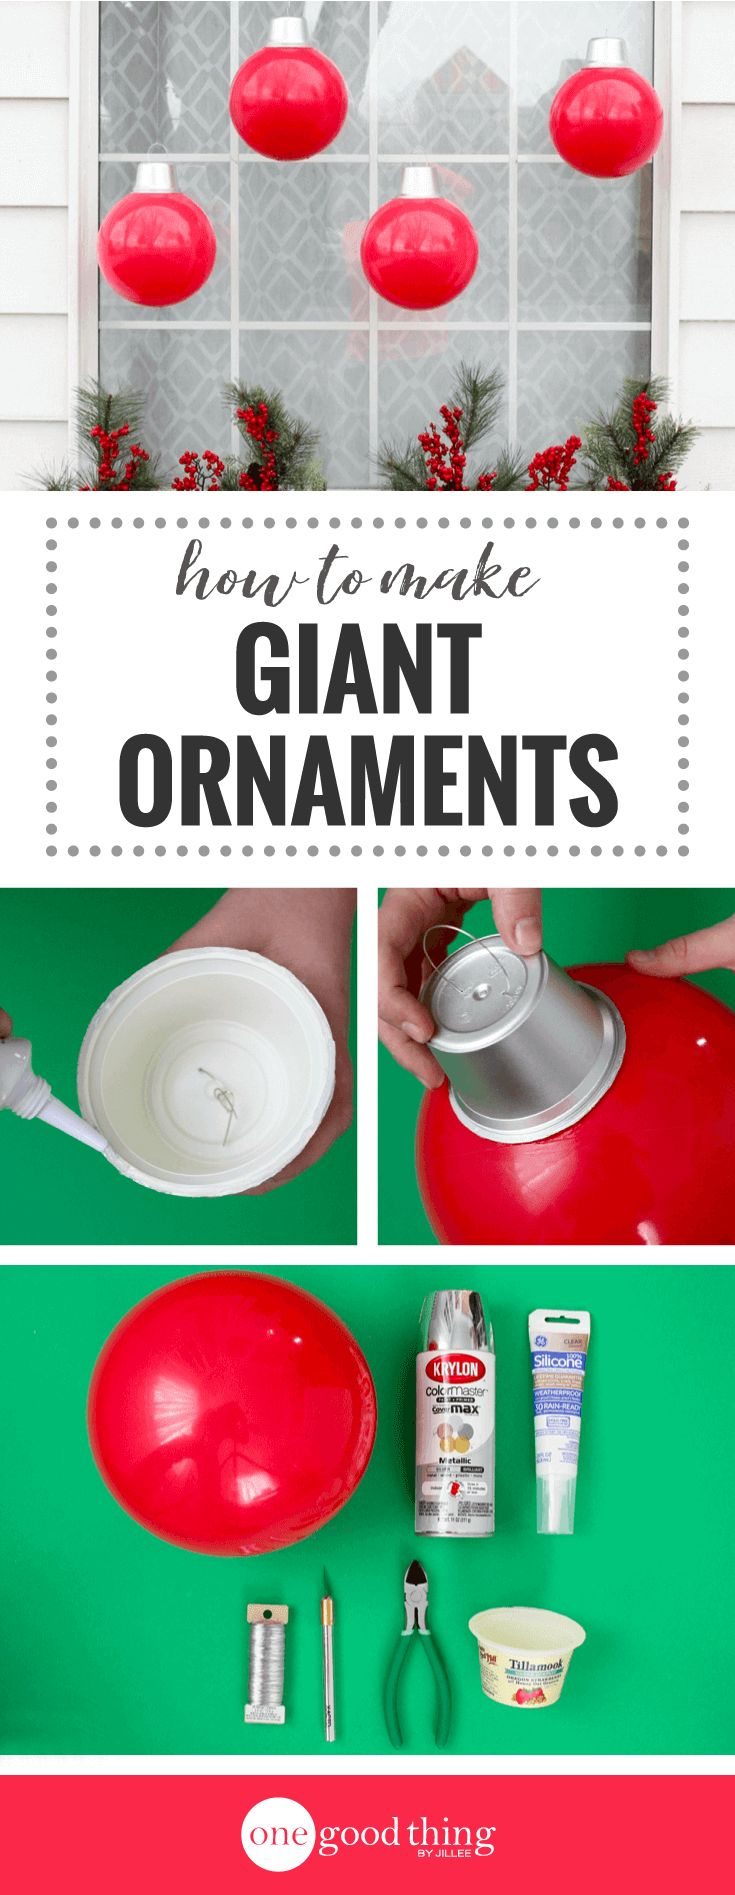 Learn how easy it is to make adorable oversized ornaments to add to your Christmas decor. Minimal effort for maximum visual impact! #christmasdecor #diychristmas